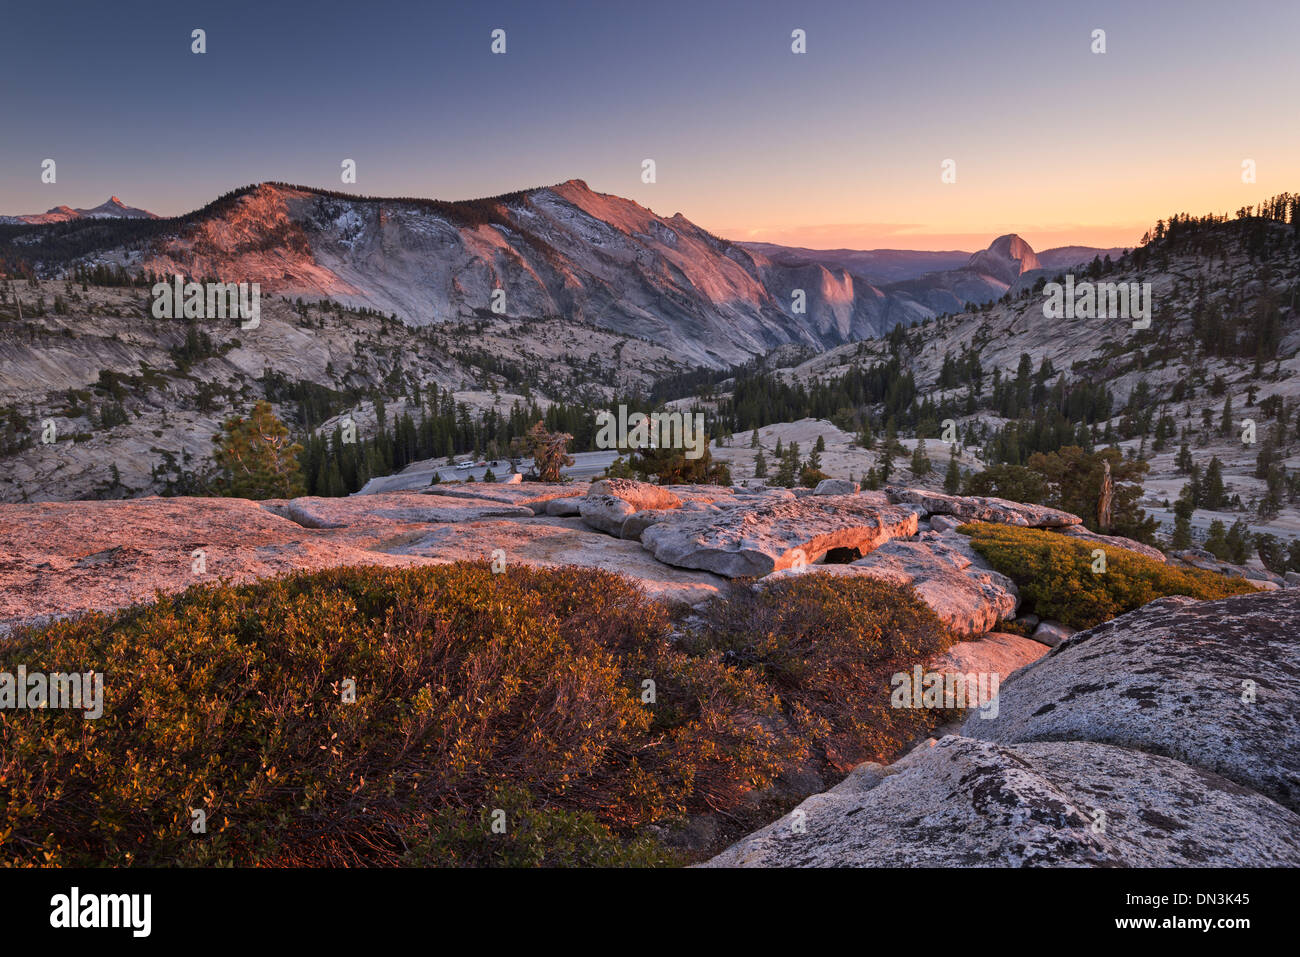 Half Dome and Clouds Rest mountains from above Olmstead Point, Yosemite National Park, California, USA. Autumn (October) - Stock Image